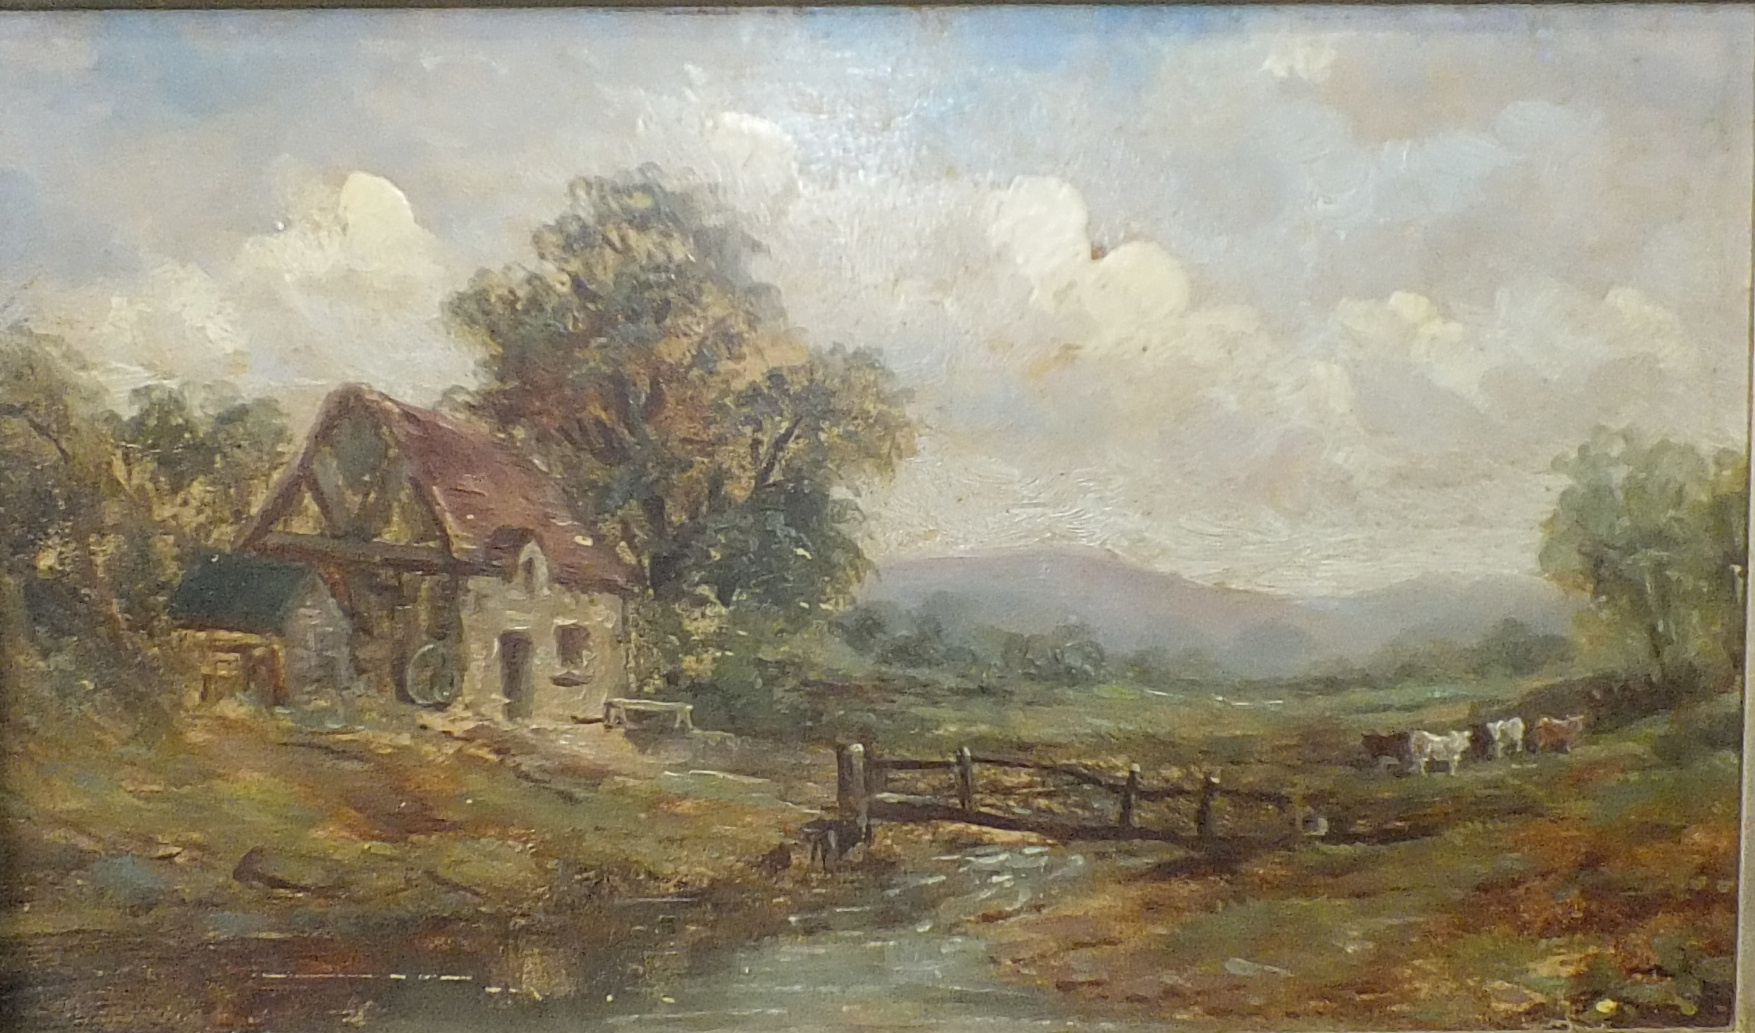 19th century English School CATTLE AND COTTAGE IN PASTORAL LANDSCAPE Unsigned oil on board, 15.5 x - Image 2 of 2